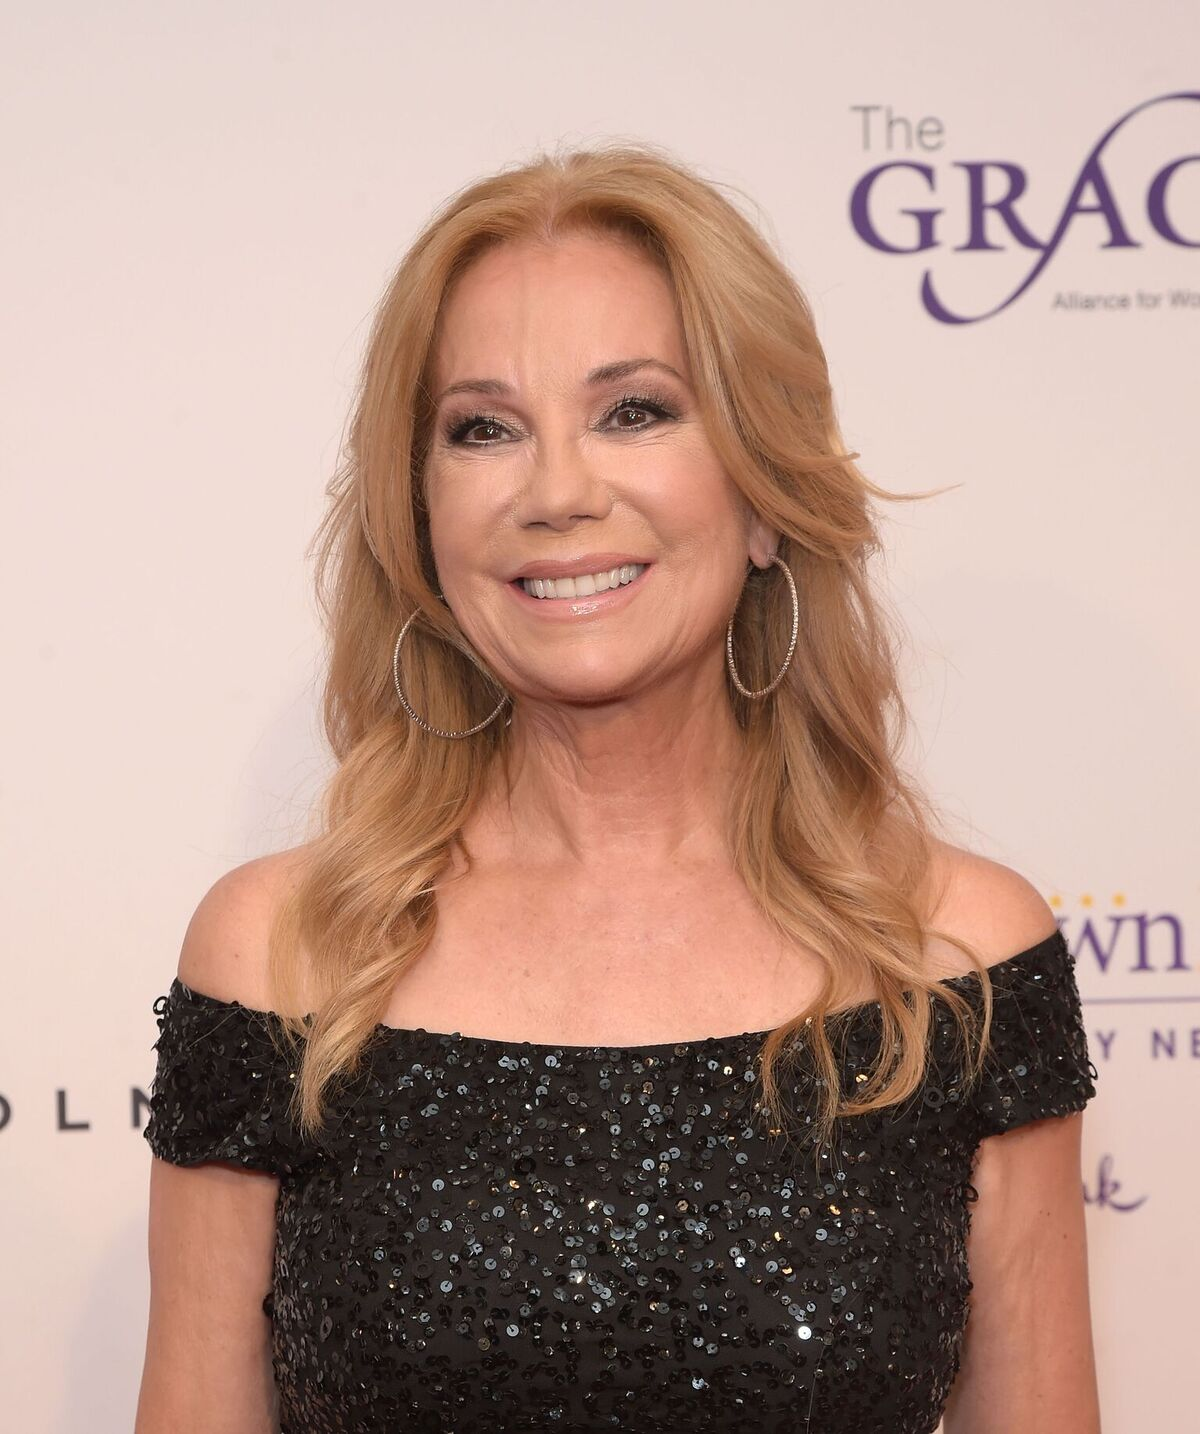 Kathie Lee Gifford attends the 41st Annual Gracie Awards Gala at the Beverly Wilshire Four Seasons Hotel on May 24, 2016 in Beverly Hills, California | Photo: Getty Images